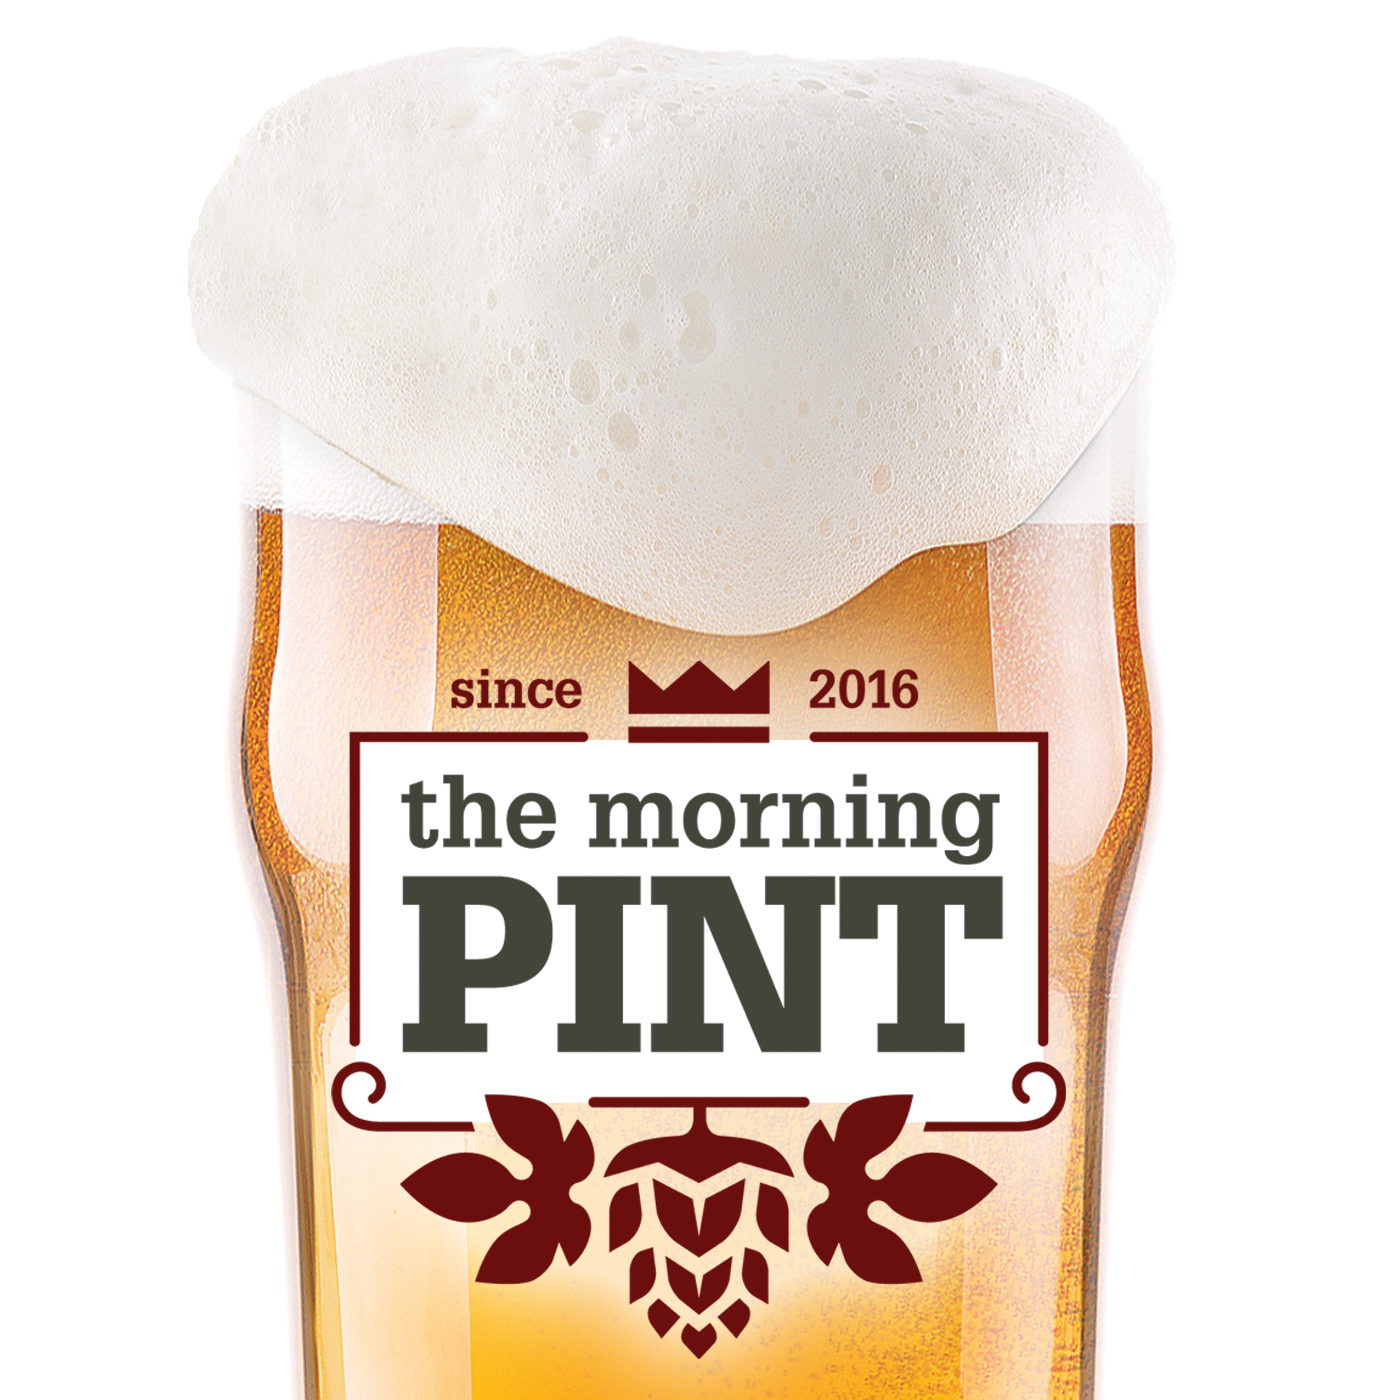 The Morning Pint for May 11, 2018